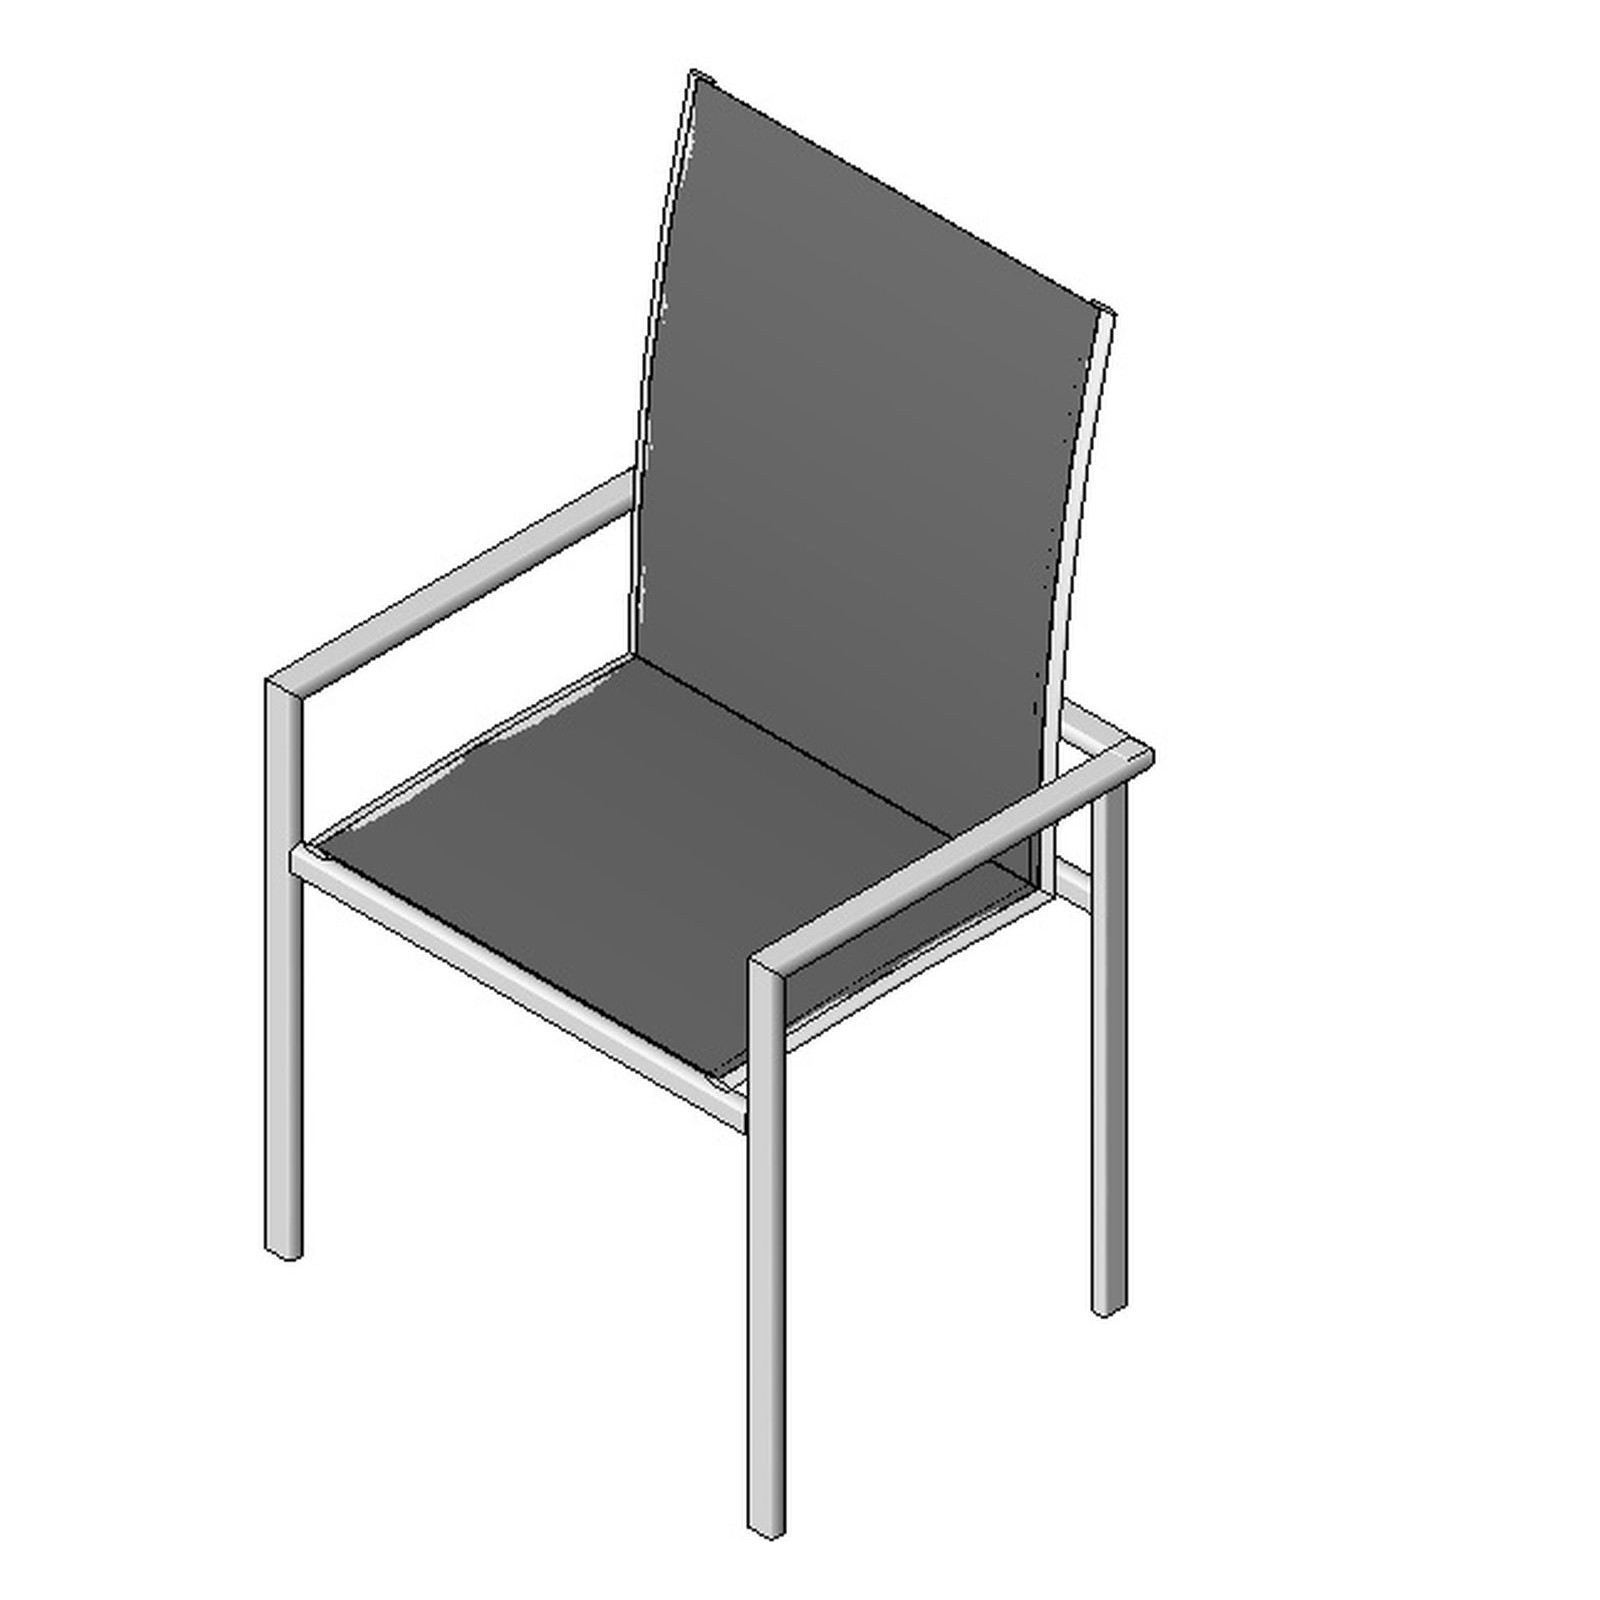 Outdoor chair type 1 design content for Outdoor furniture revit